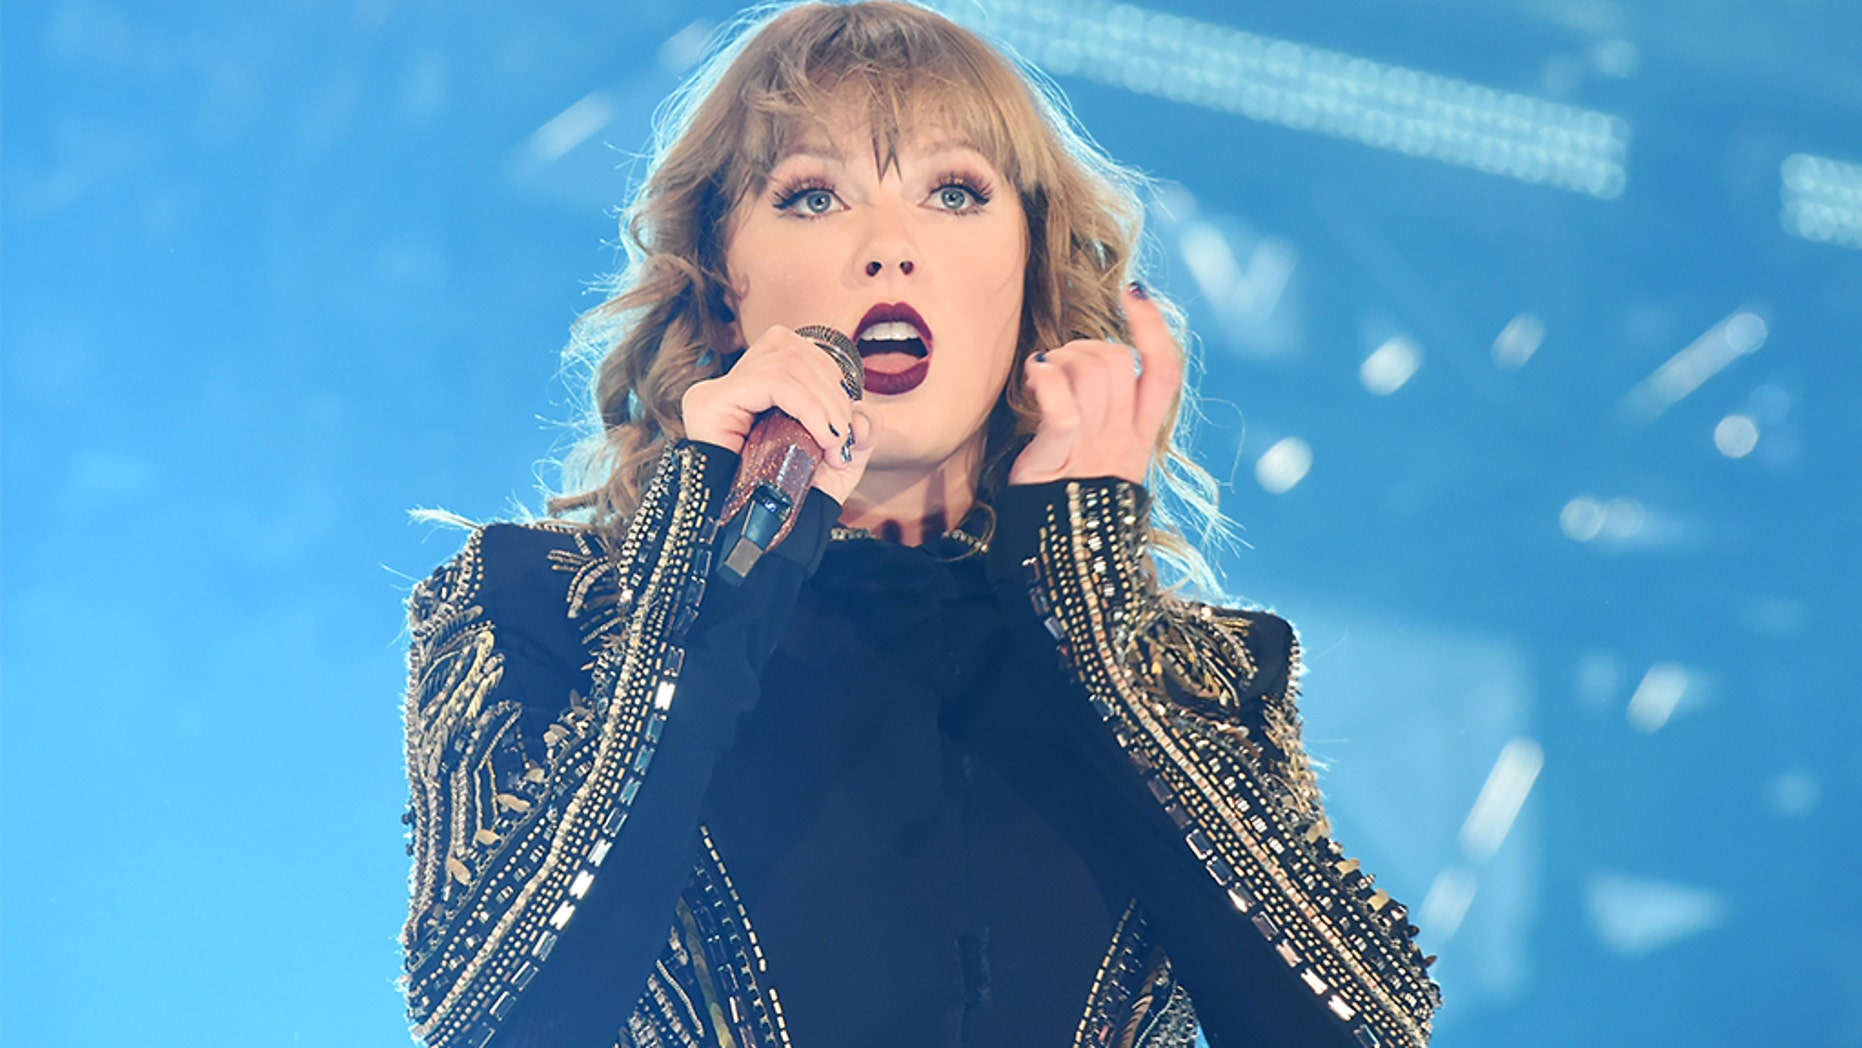 Taylor Swift releasing Reputation Tour concert film